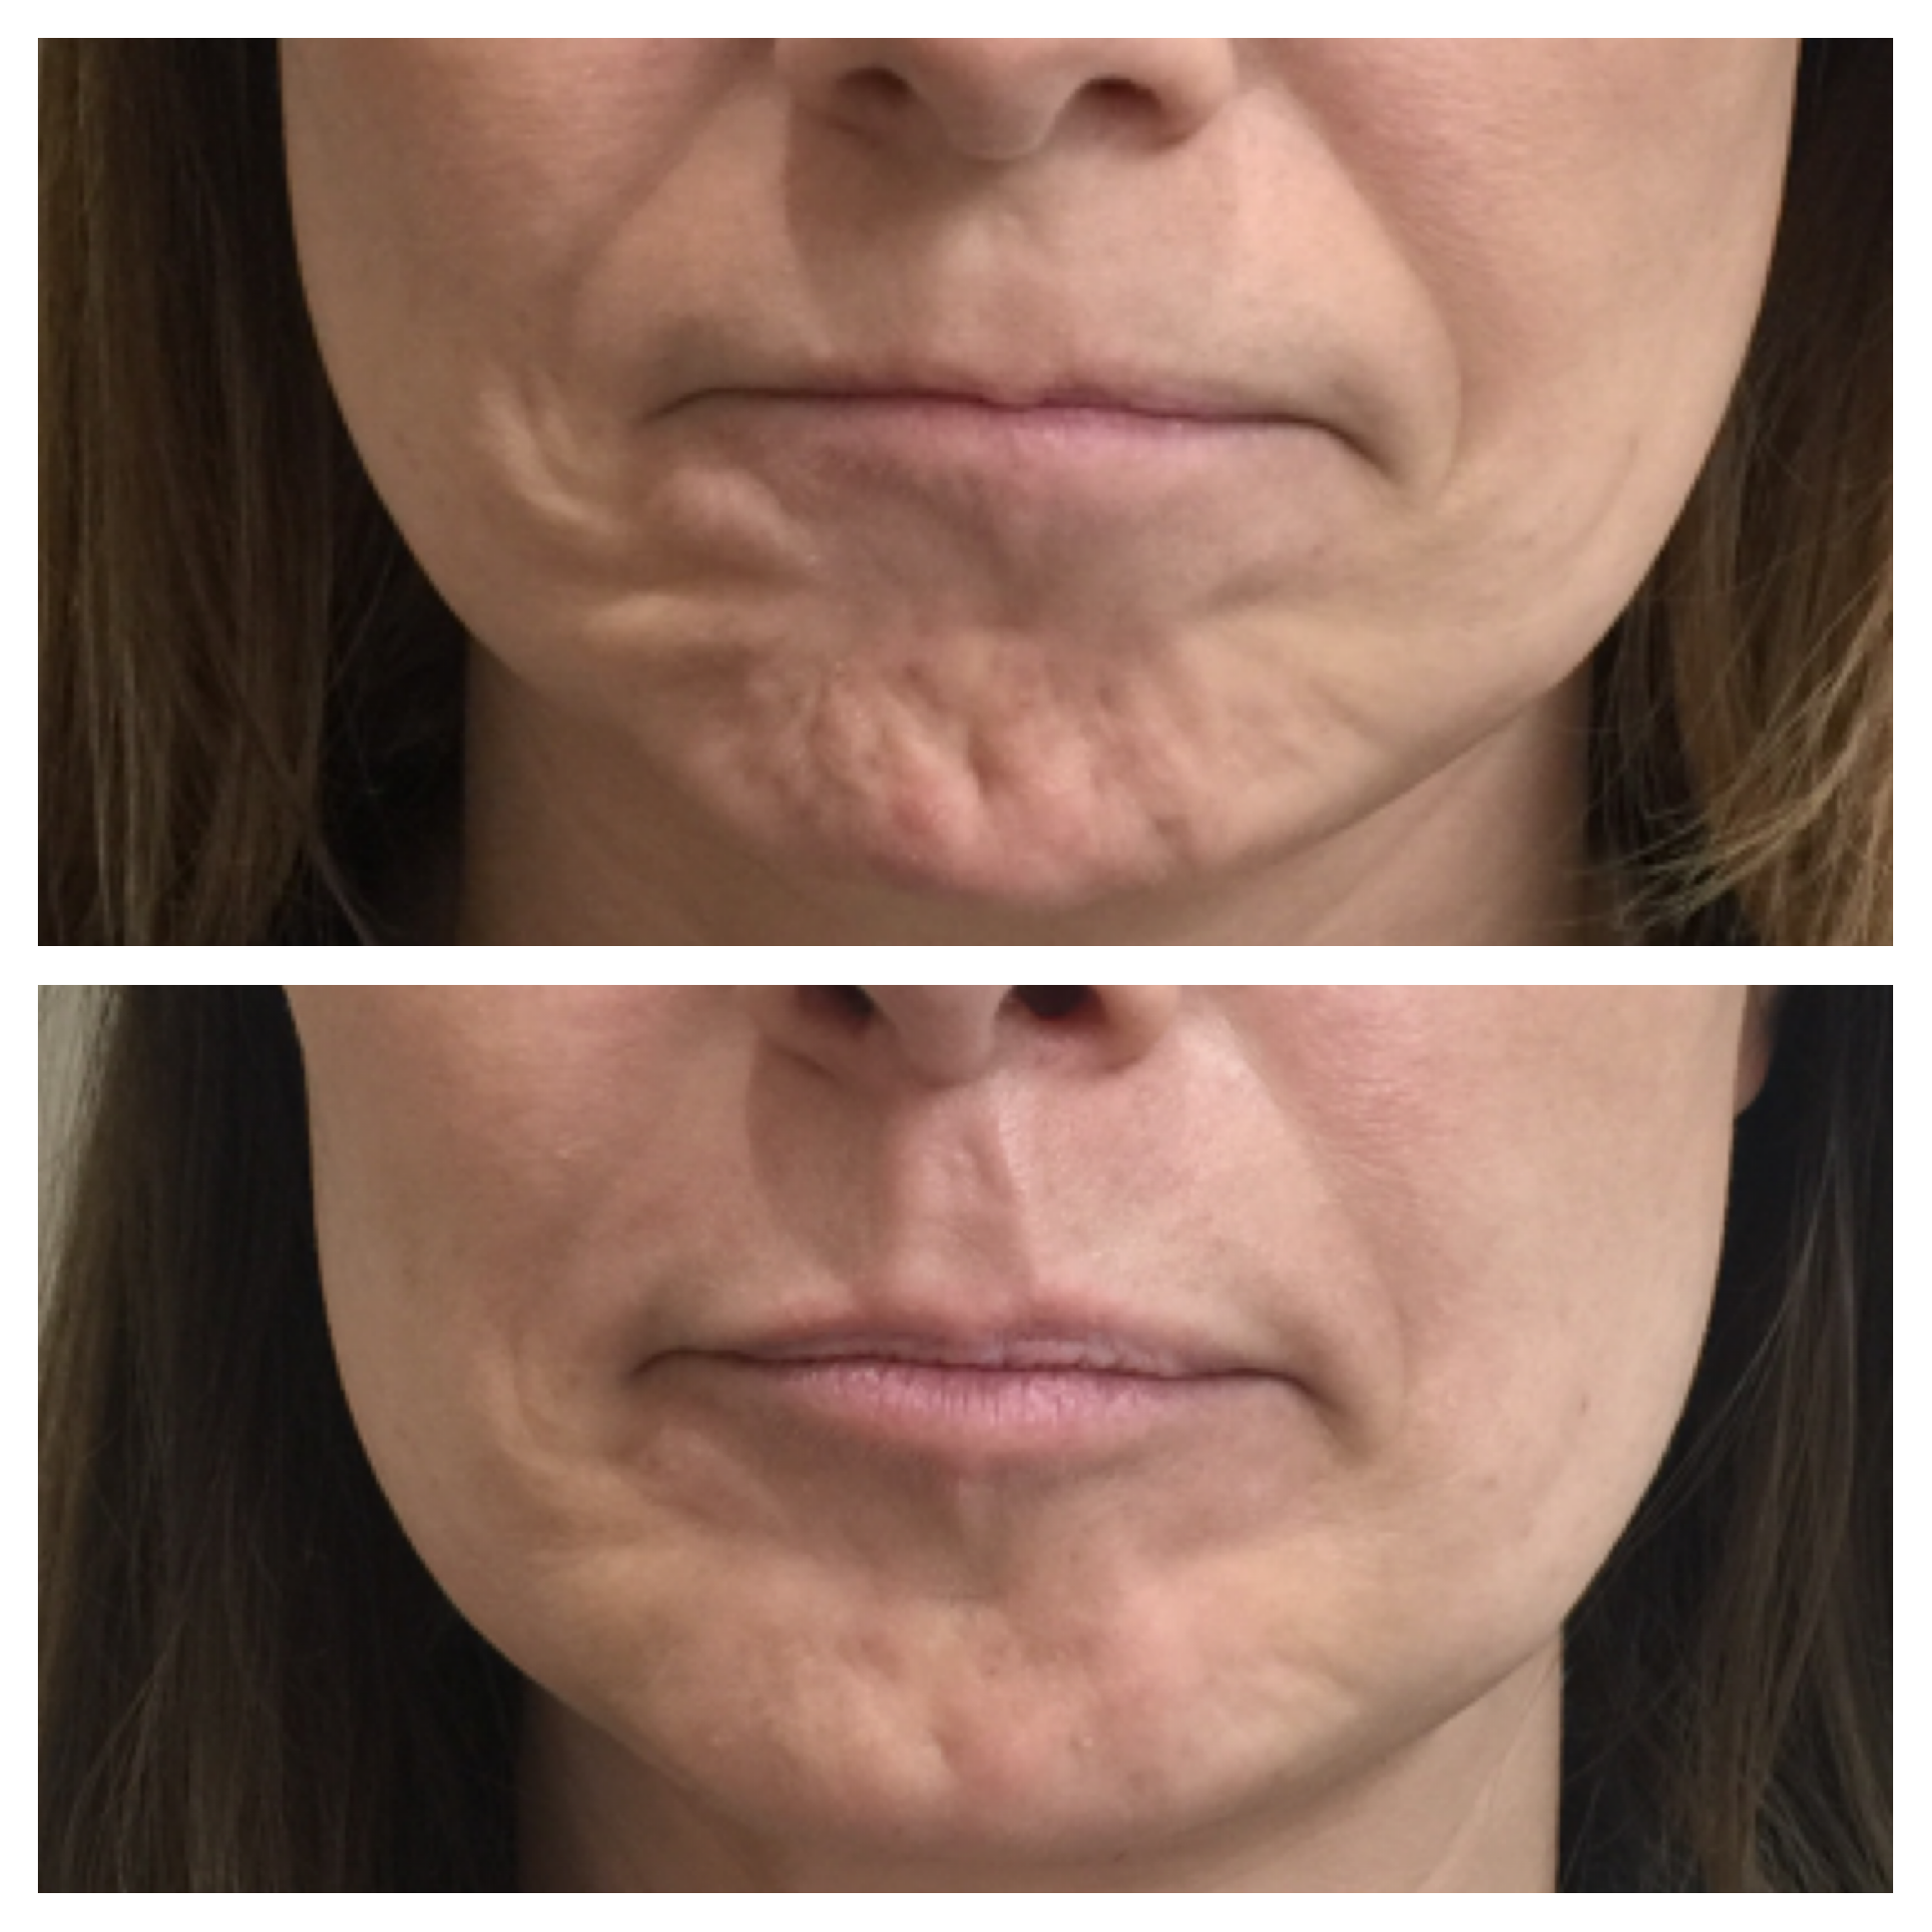 Botox injections in the chin by Dr Ravichandran at Clinetix Glasgow to improve the appearance of dimpling and roughened skin over the chin.